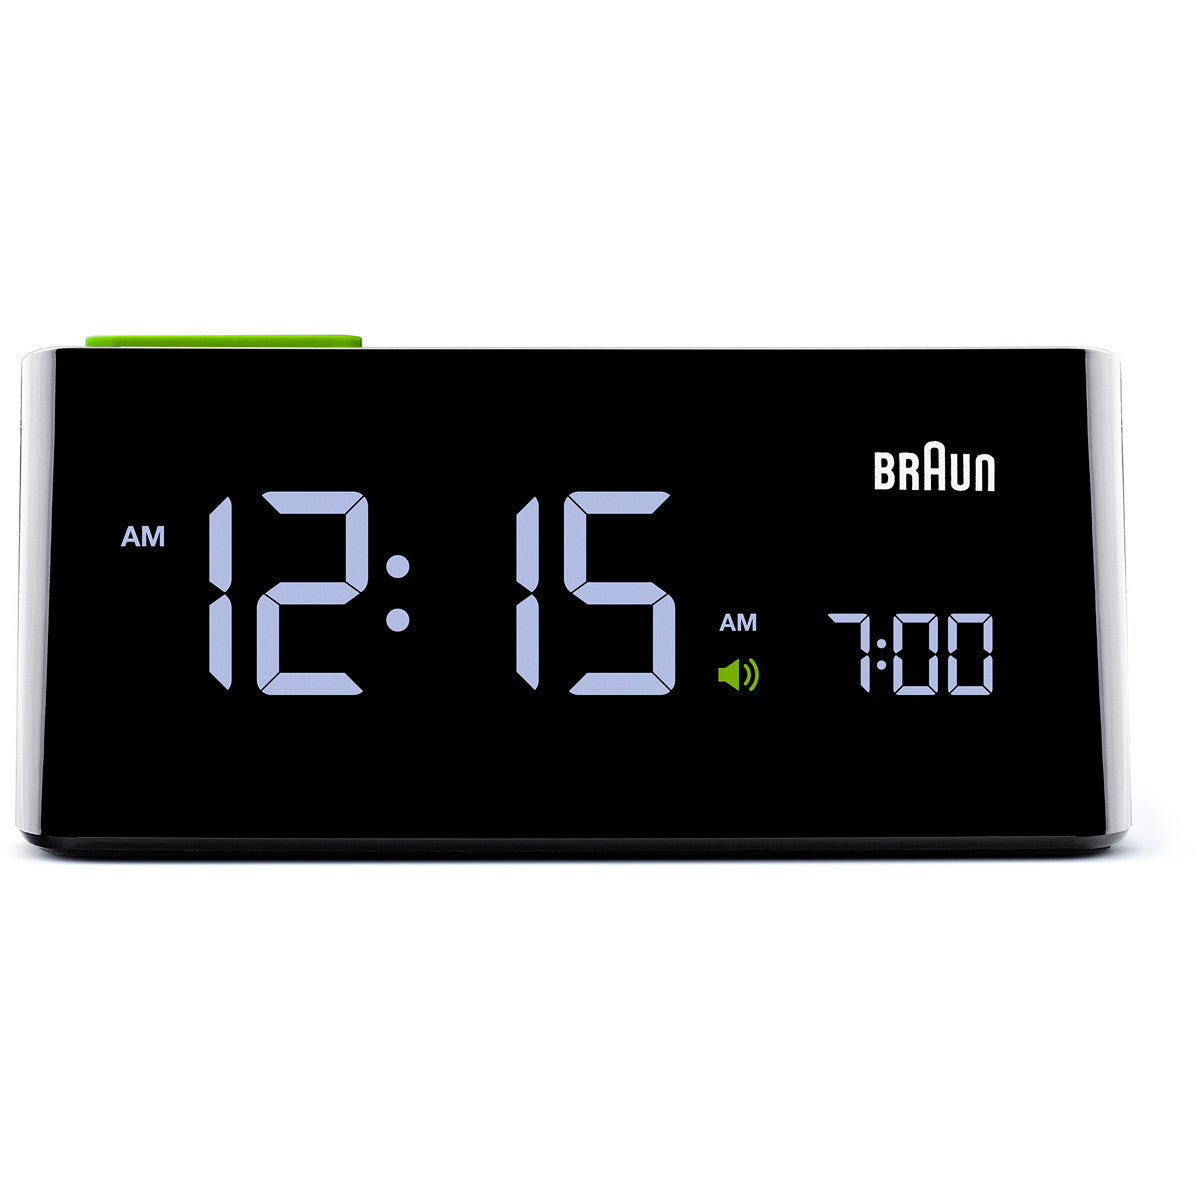 Braun: Digital LCD Alarm Clock - Black (BN-C016BK)